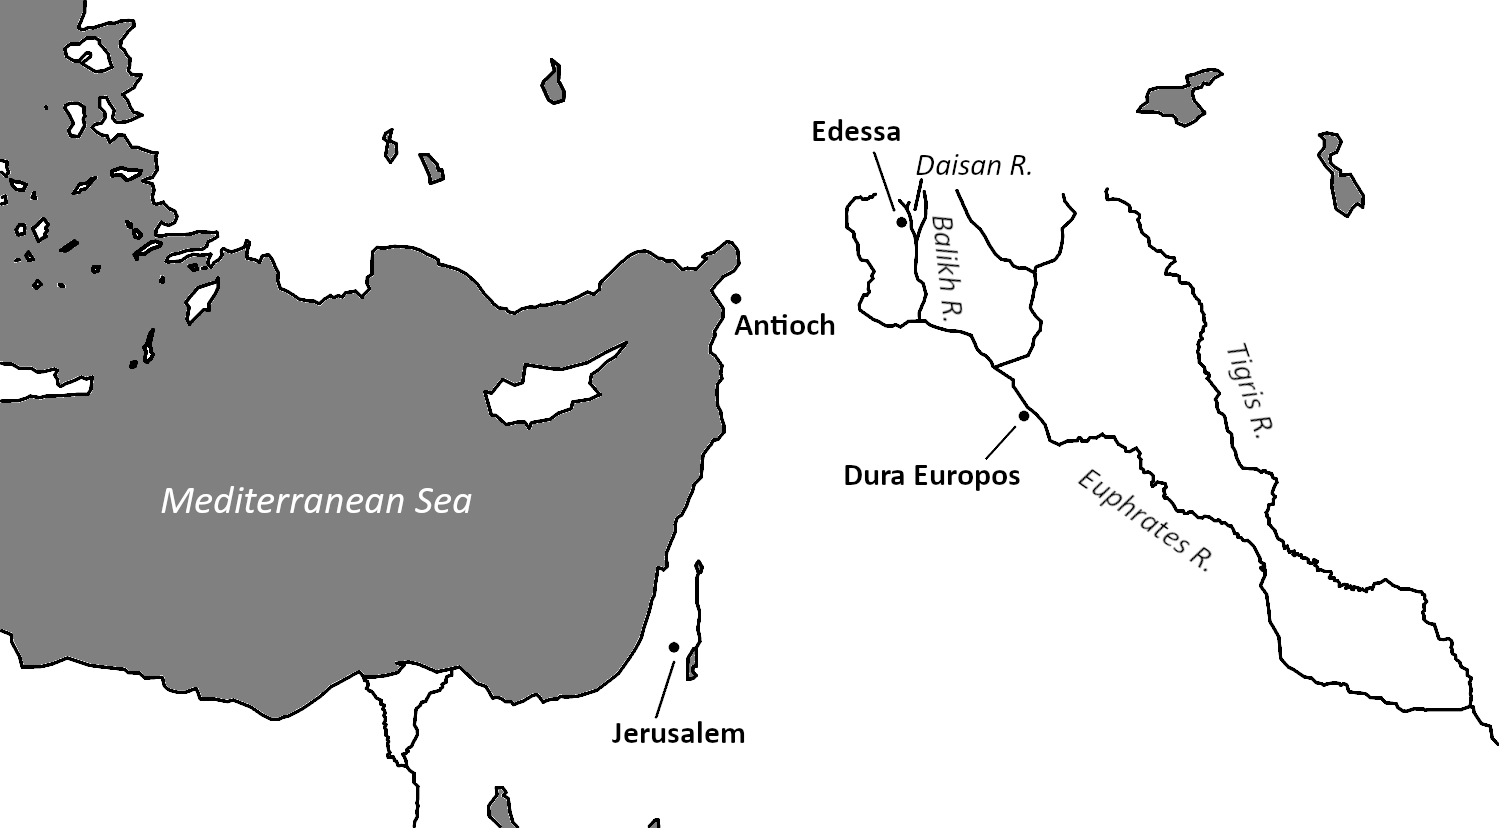 Map showing the locations of ancient Edessa and Dura Europos